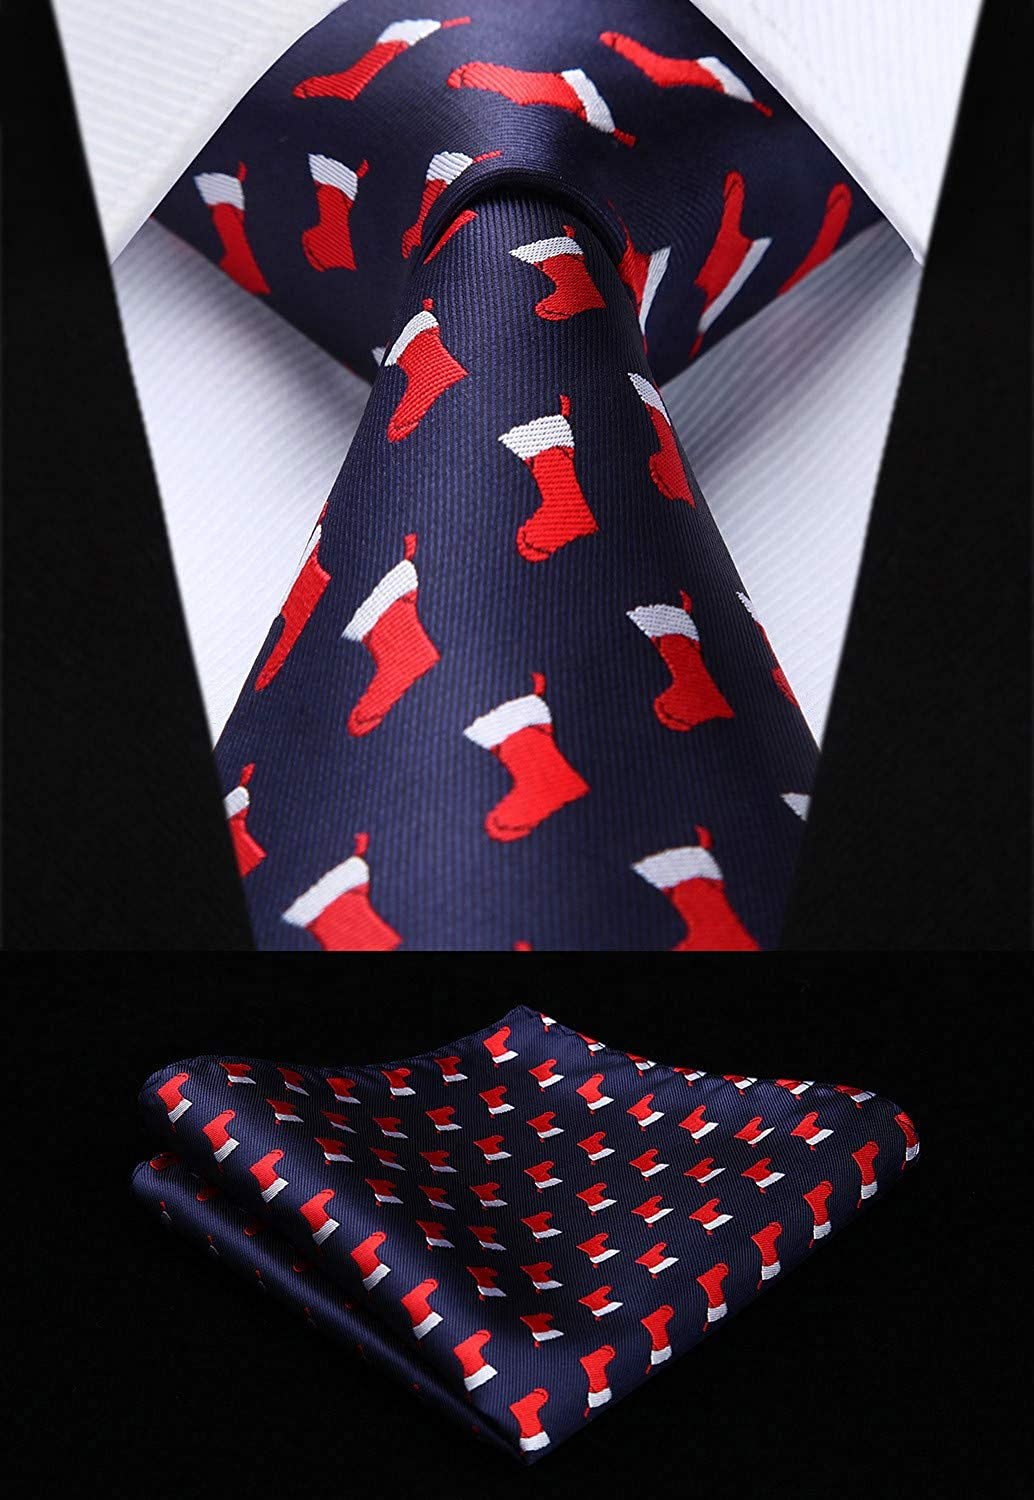 HISDERN Christmas Tie for Men Holiday Season Party Necktie /& Pocket Square Set